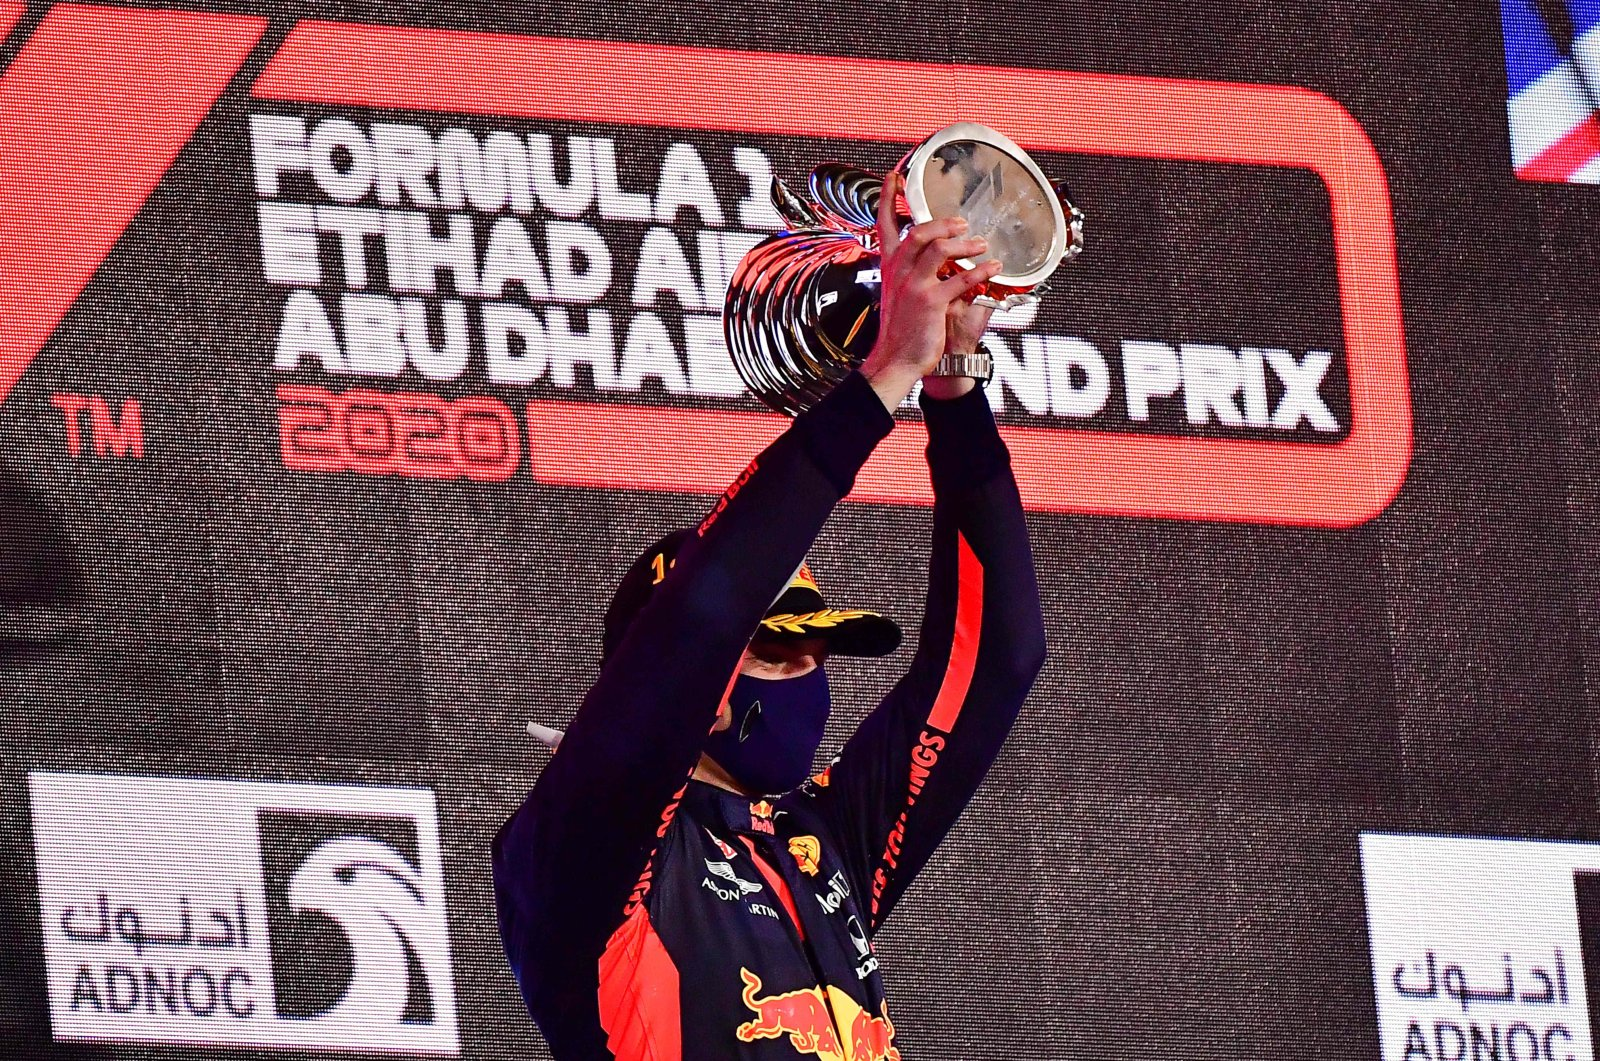 Red Bull driver Max Verstappen lifts his trophy on the podium after winning the F1 Abu Dhabi Grand Prix at the Yas Marina Circuit in Abu Dhabi, UAE, Dec. 13, 2020. (AFP Photo)